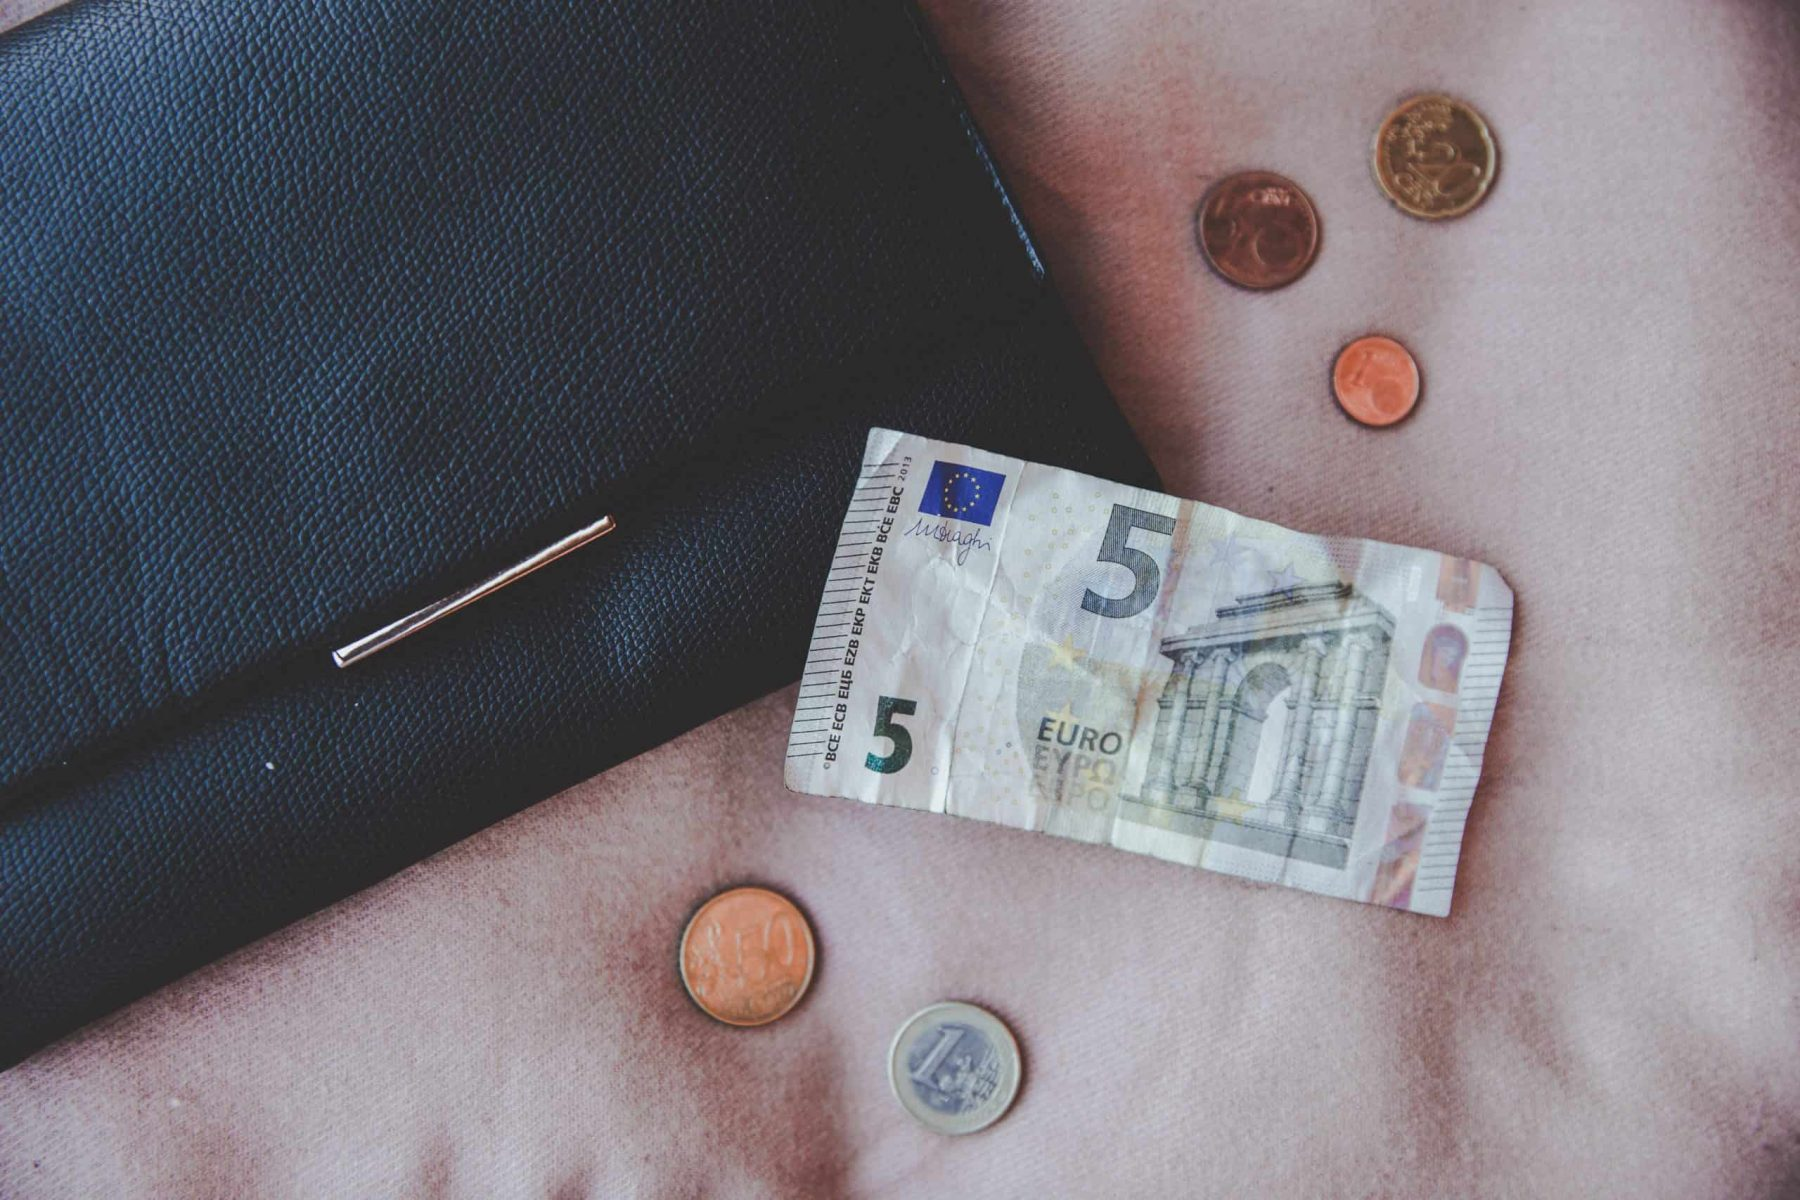 Euros next to a purse - I spend much less money as a digital nomad!